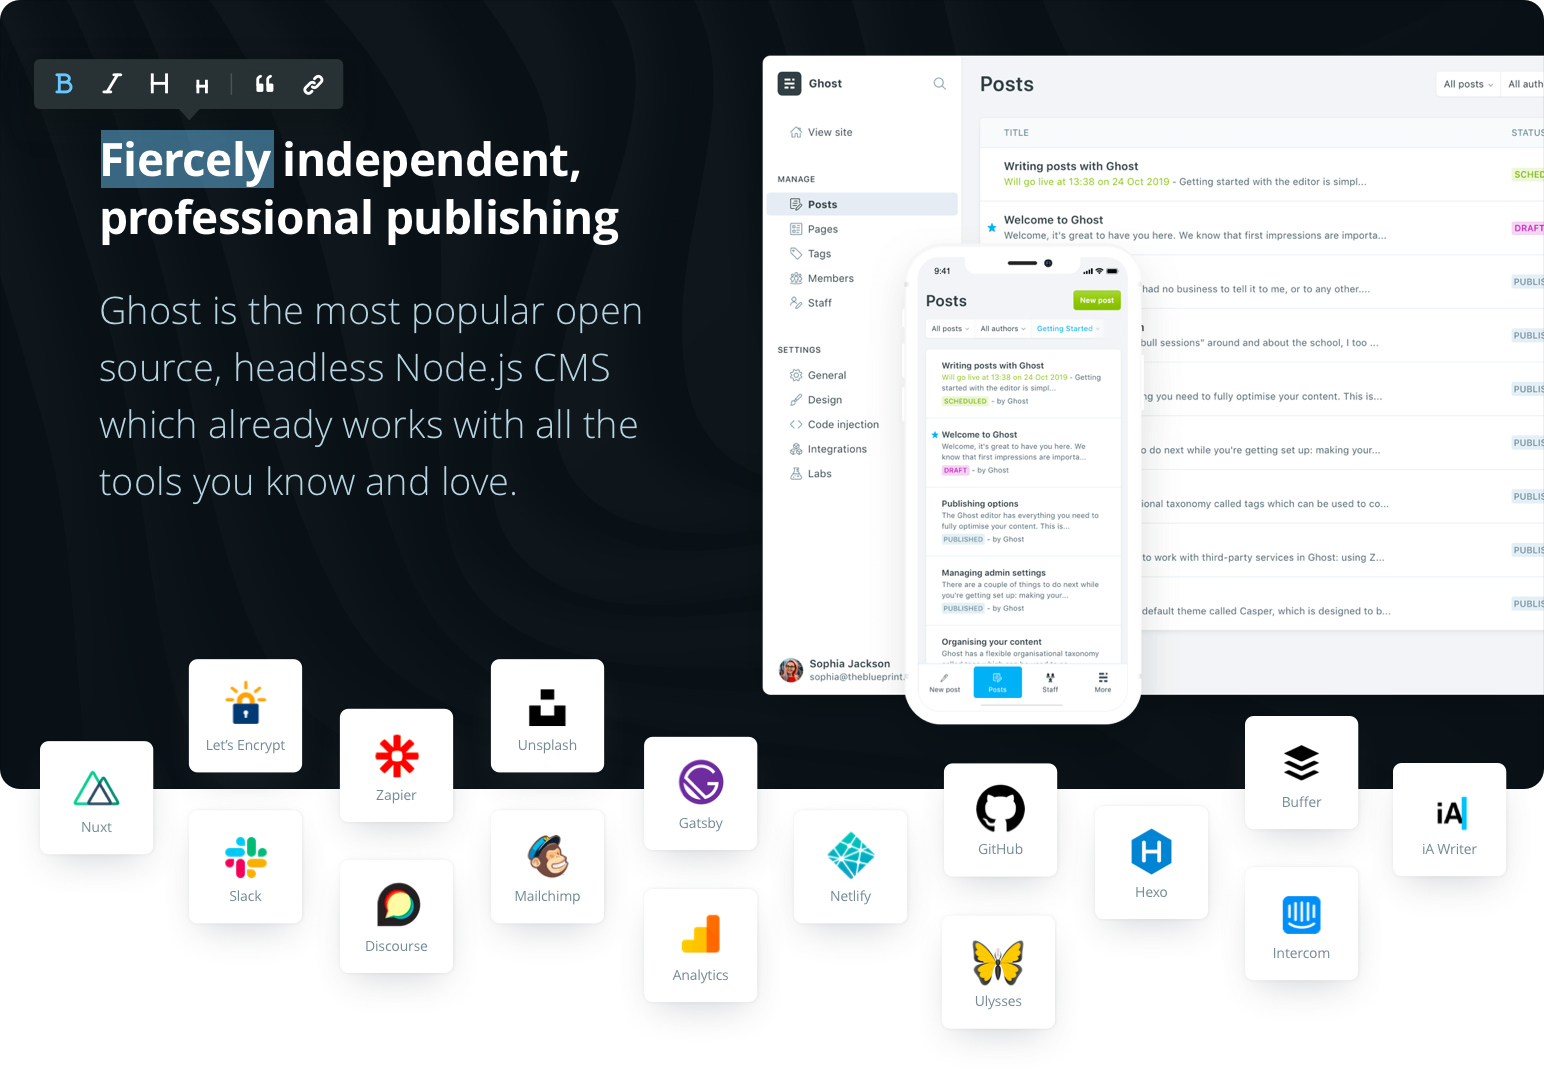 Fiercely independent, professional publishing. Ghost is the most popular open source, headless Node.js CMS which already works with all the tools you know and love.